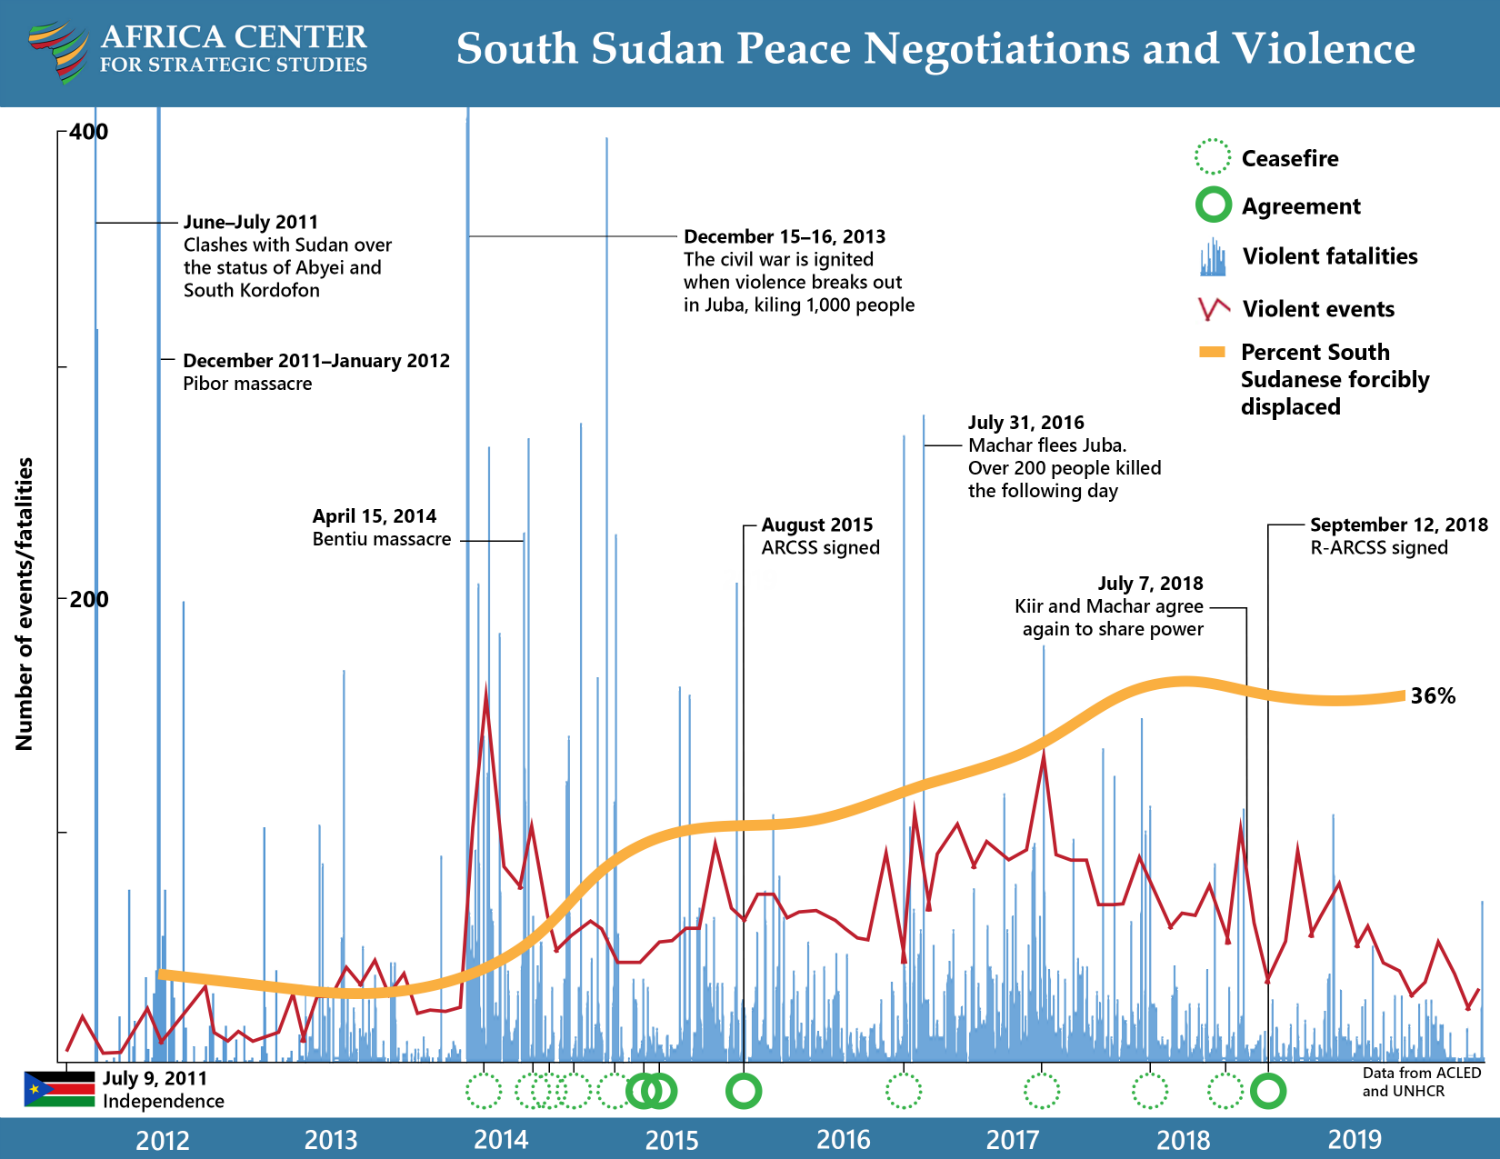 Timeline of South Sudan Peace Negotiations and Violence